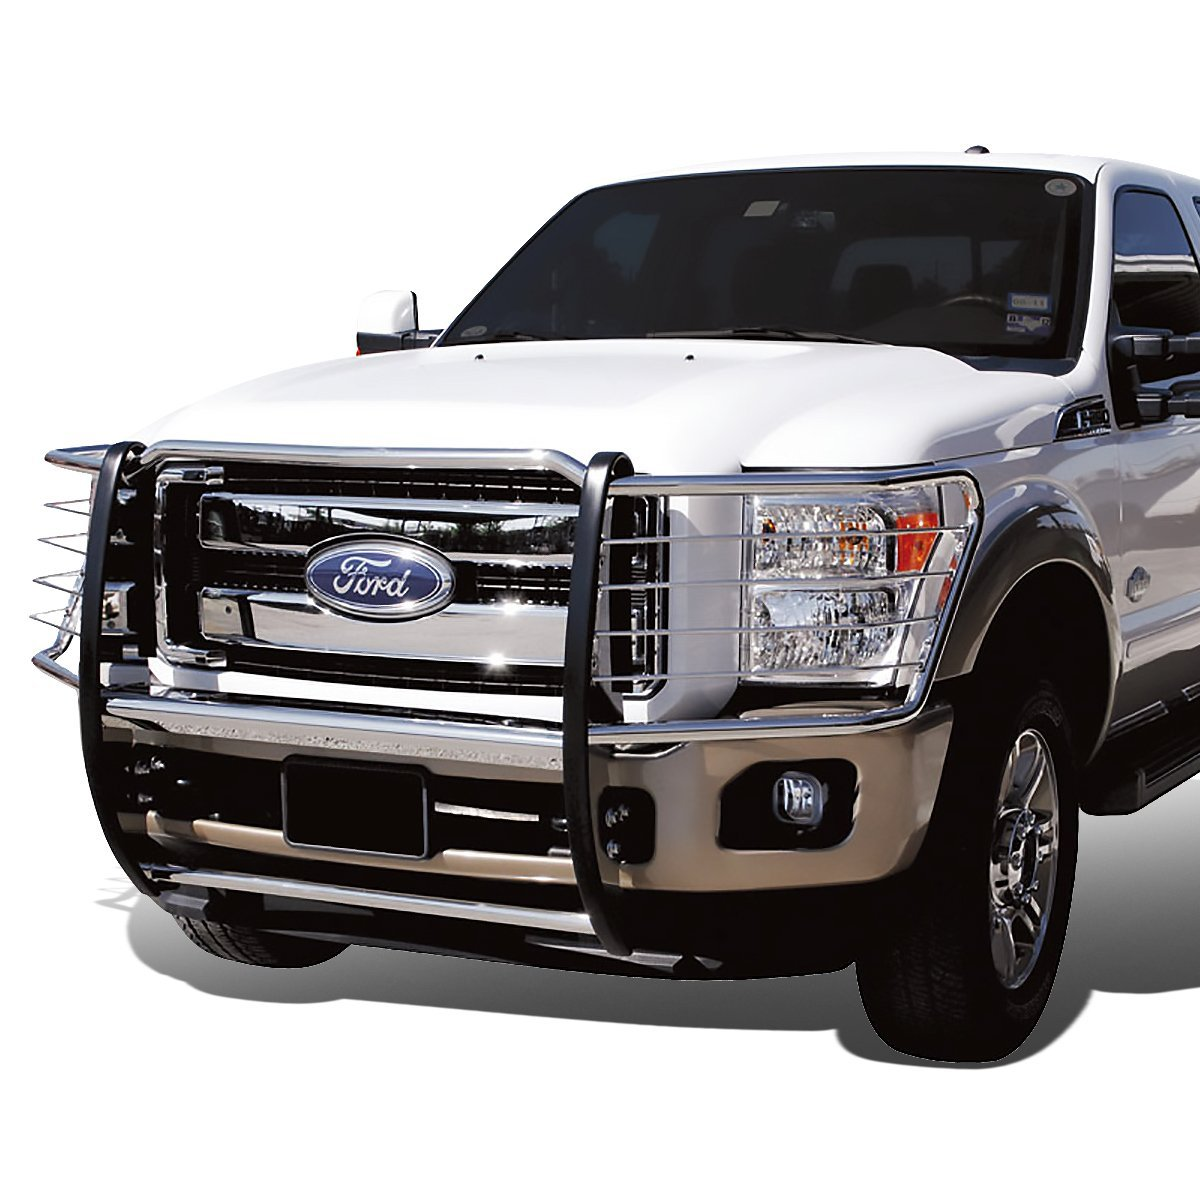 Ford Truck Grille Guards Ford F150 Bull Bars Brush Guards